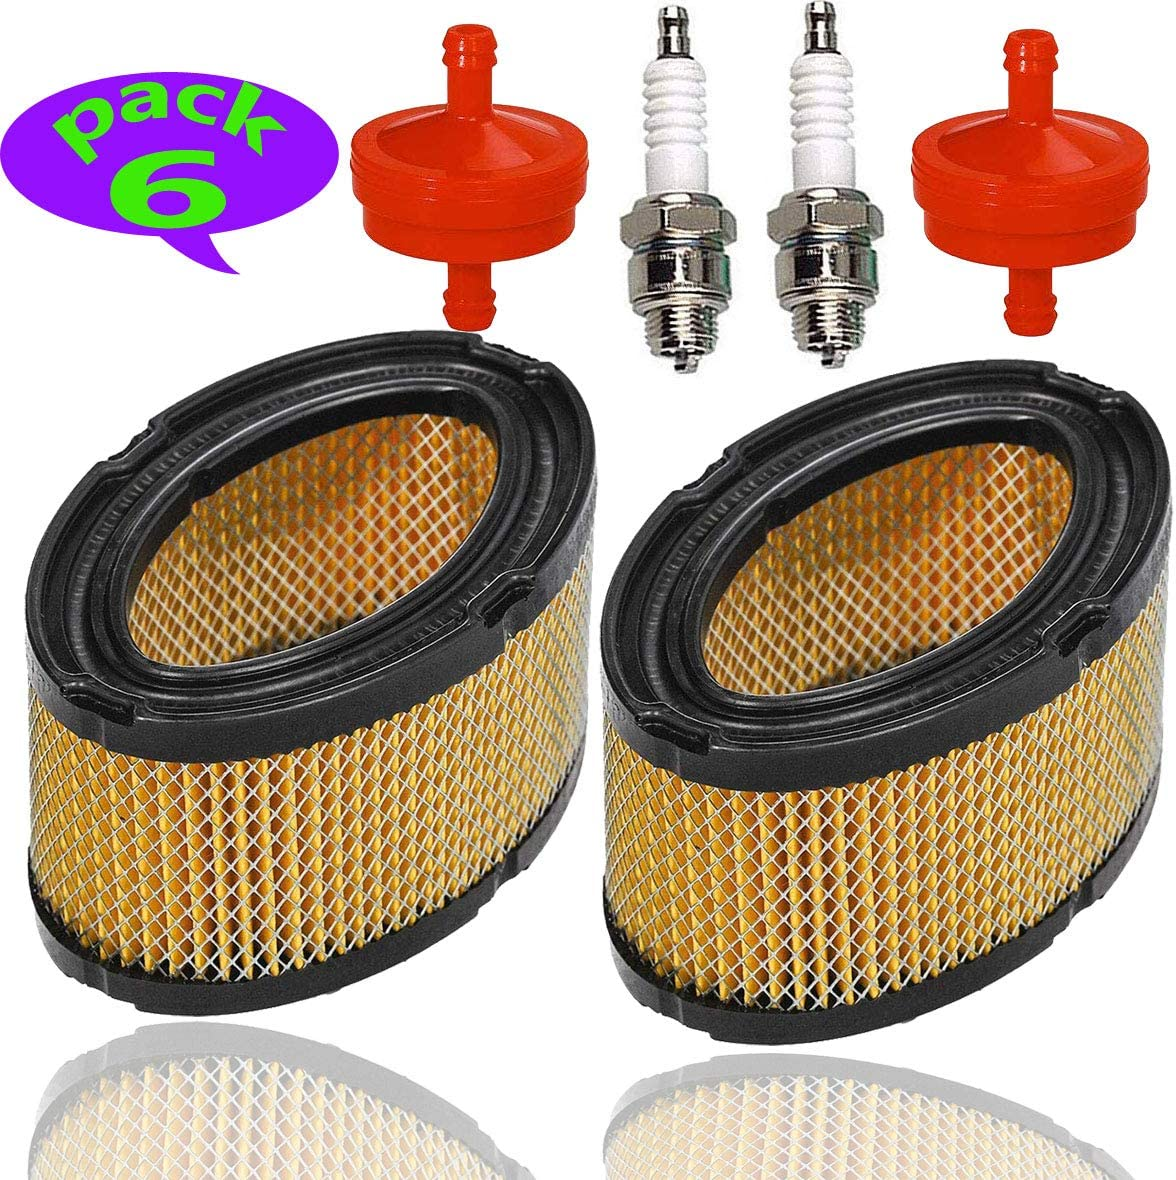 2pcs 33268 Air Filter +2pcs Fuel Filter+ 2pcs Spark Plug for Tecumseh John Deere M49746 Oregon 30-100 Stens 100-115 Prime Line 7-02232 HM70 HM80 TVM195 VM80 HM100 HXL840 7HP 8HP 10HP Horizontal Engine